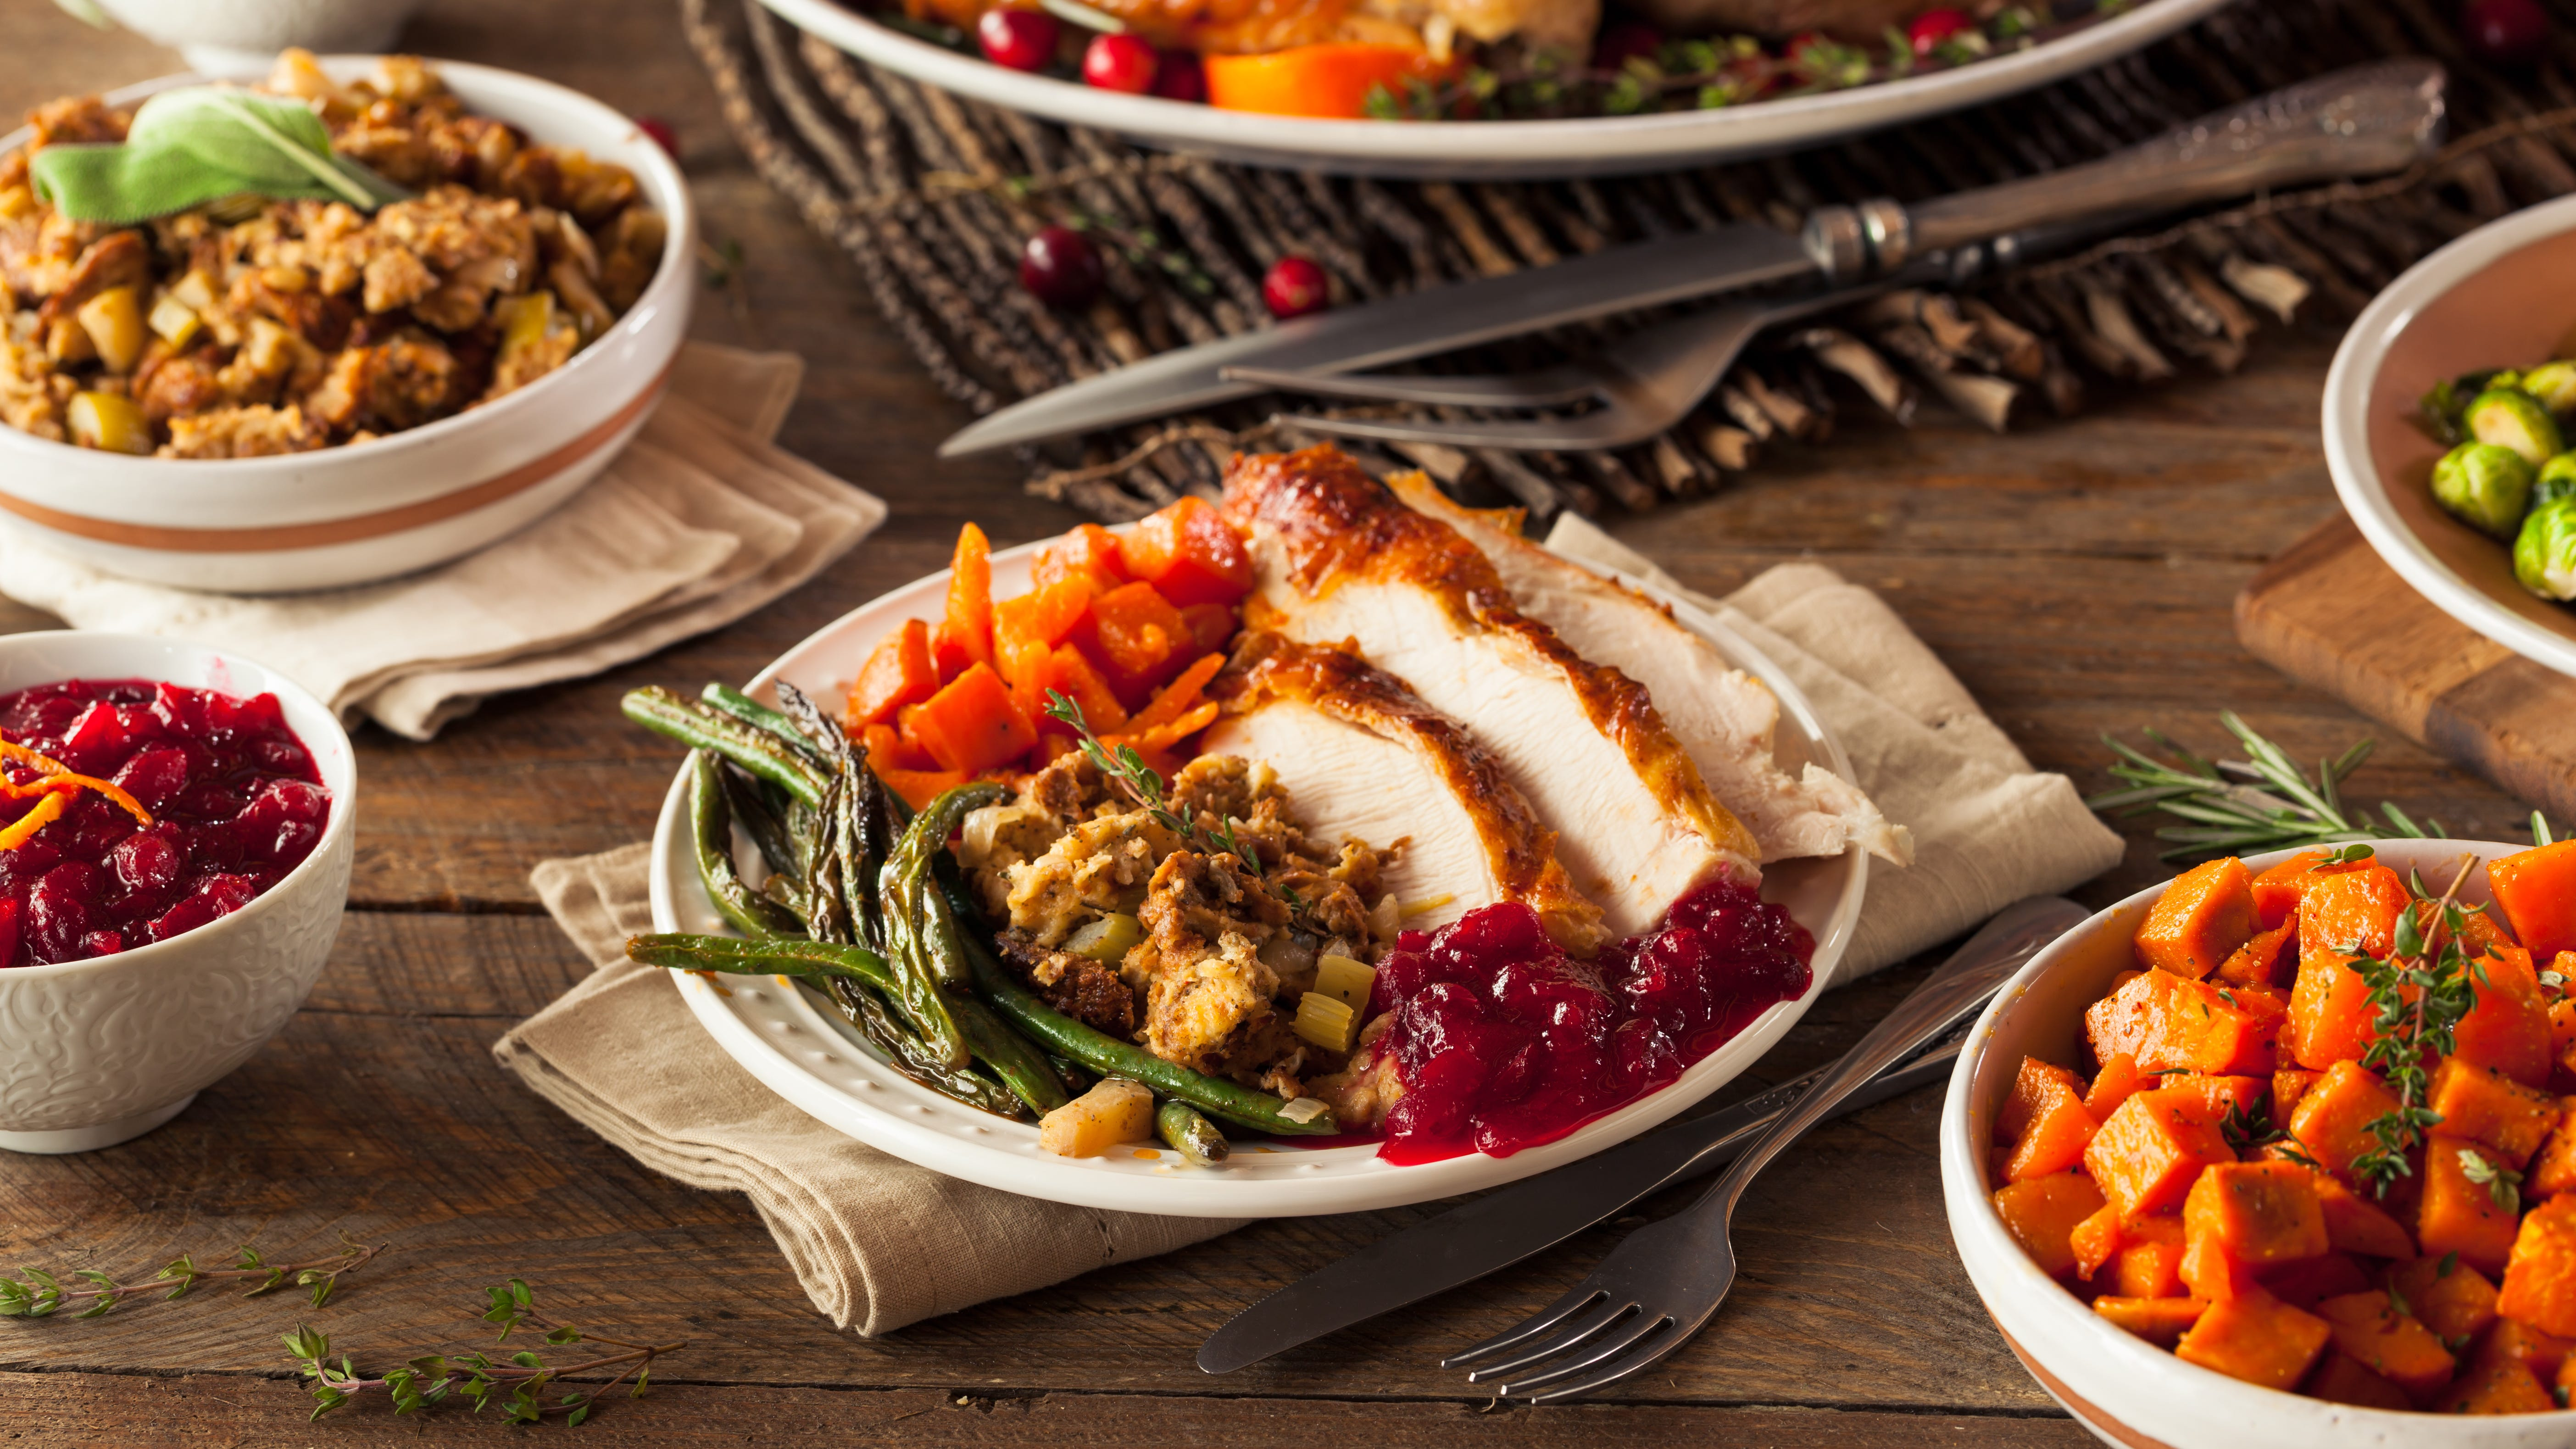 Several local restaurants in town will offer festive meals on Thanksgiving day.